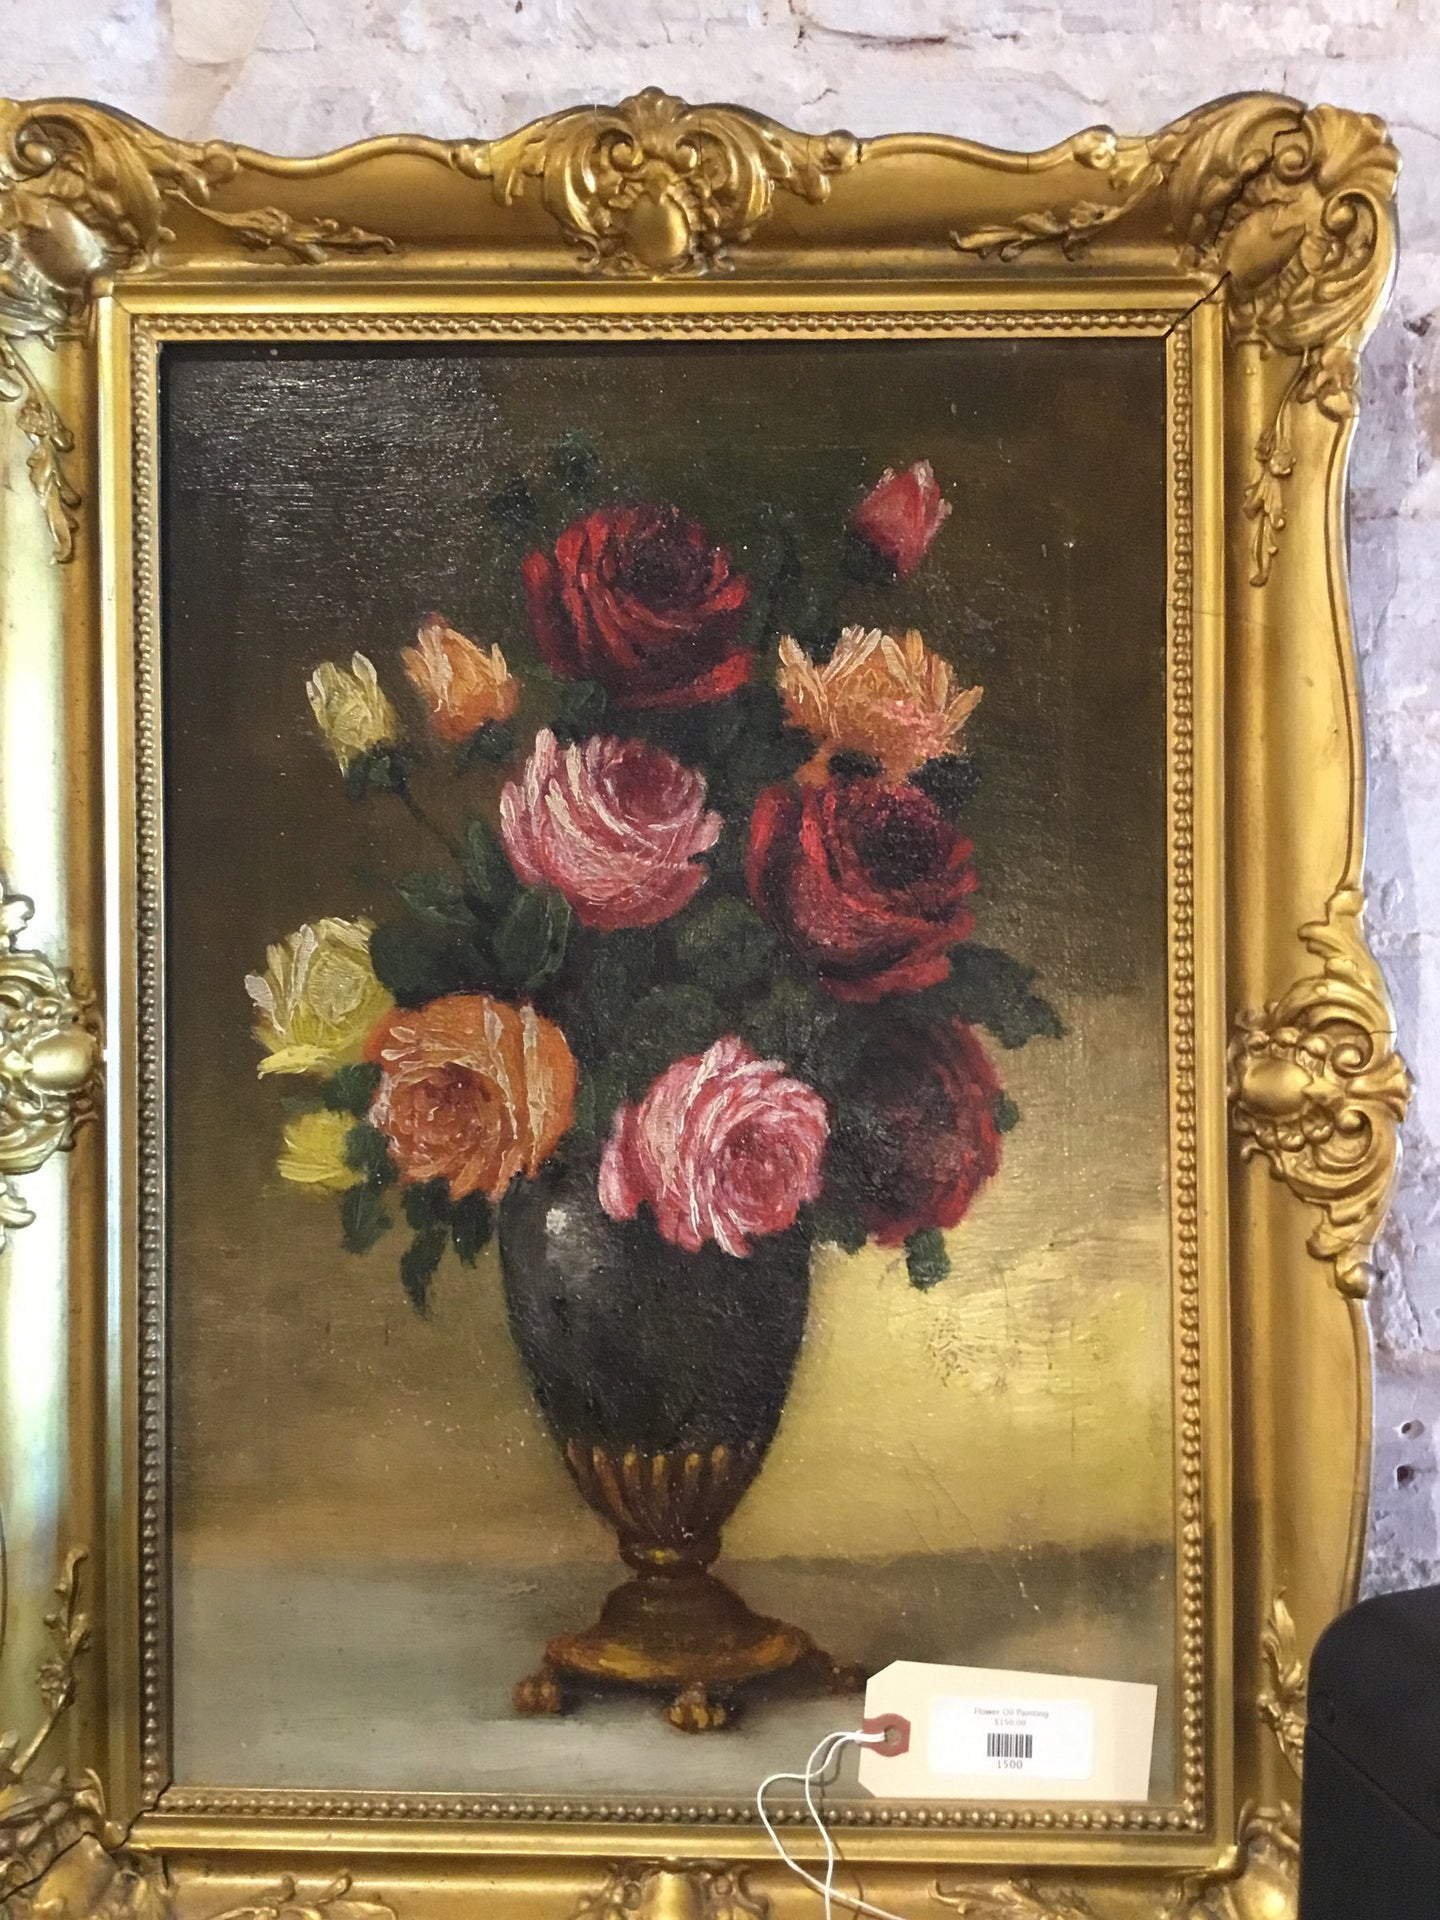 Flower Oil Painting - Chestnut Lane Antiques & Interiors